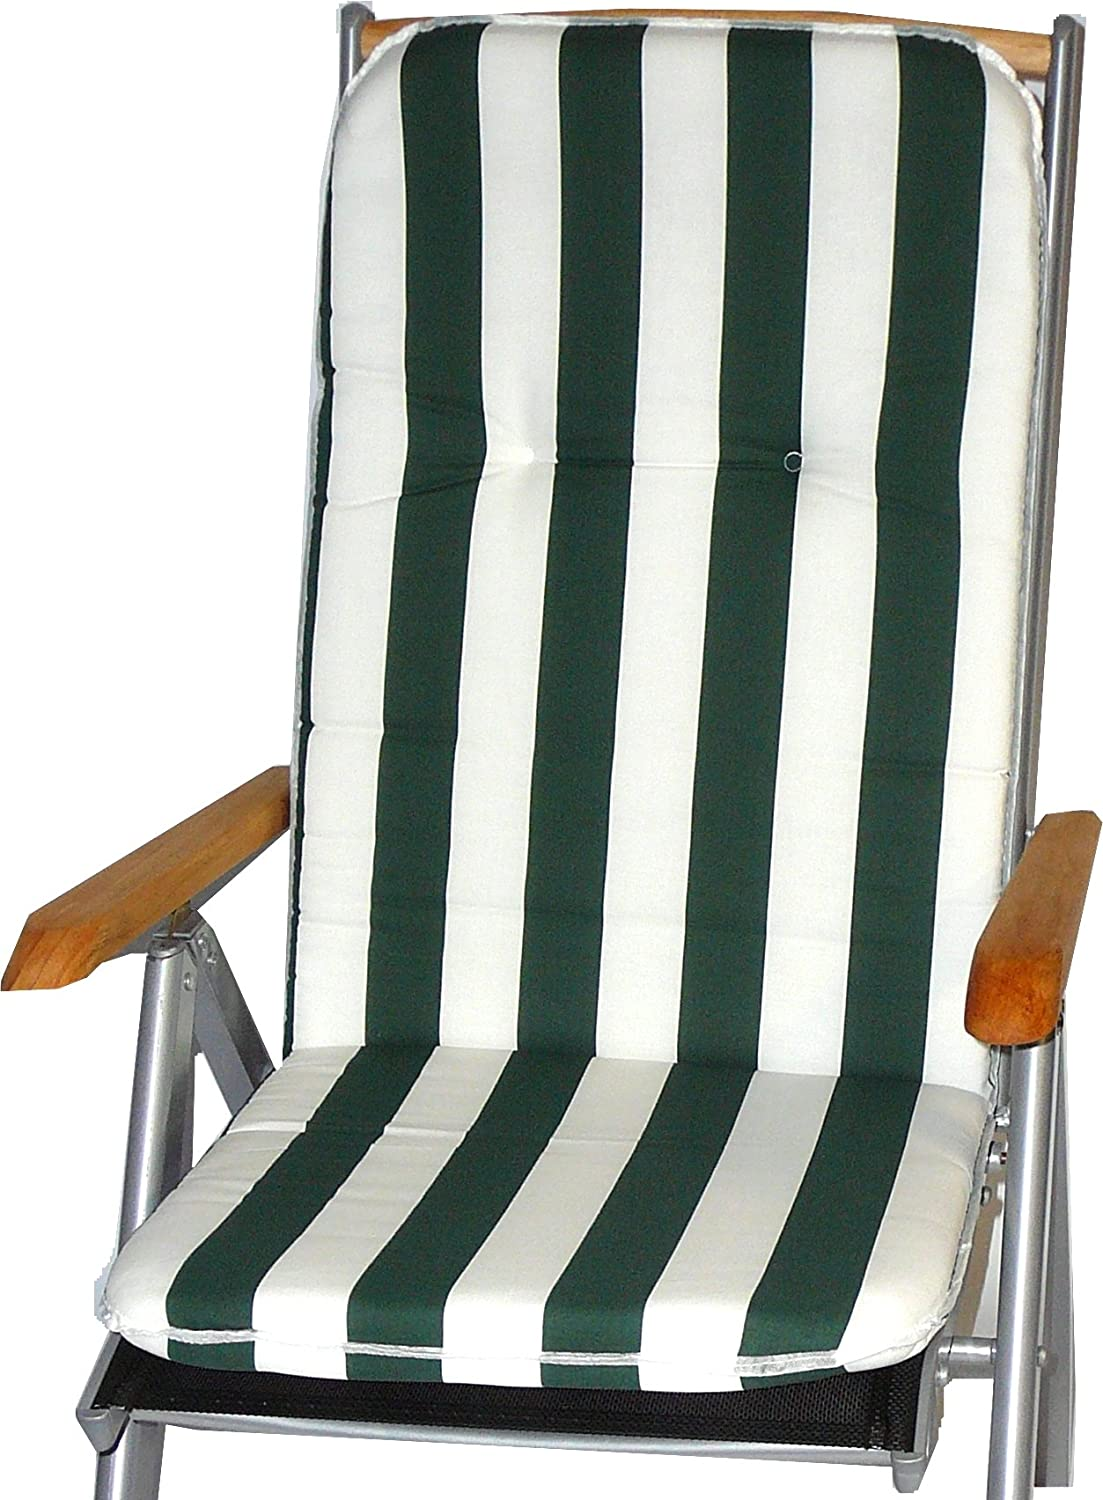 beo BS10 Capri HL piping pad for chair, circa 47 x 114 cm, approximately 5 cm thick Gartenstuhl-Kissen